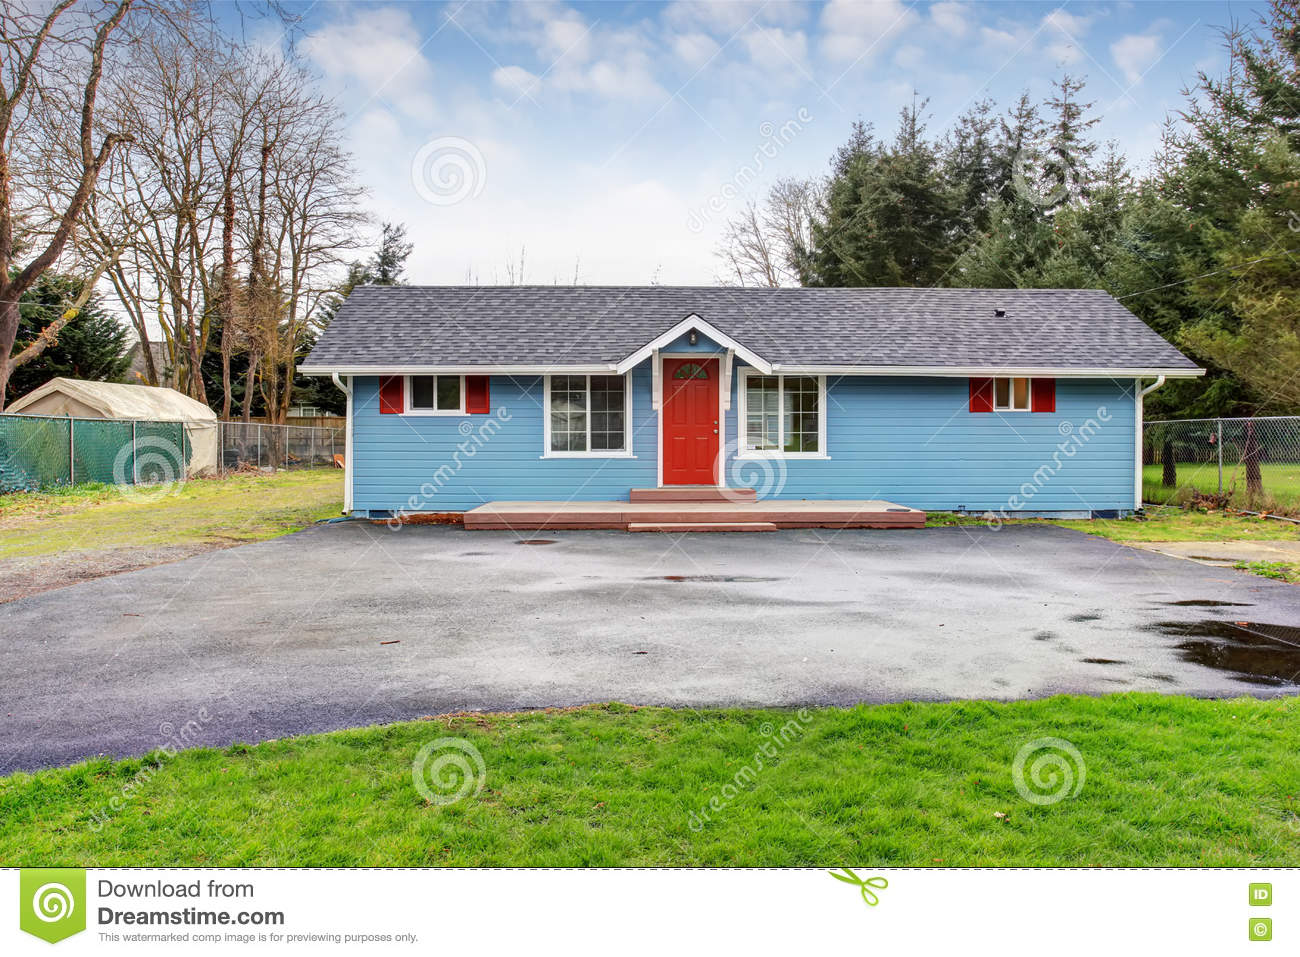 simple one story house exterior with blue and red trim stock photo simple one story house exterior with blue and red trim royalty free stock photo